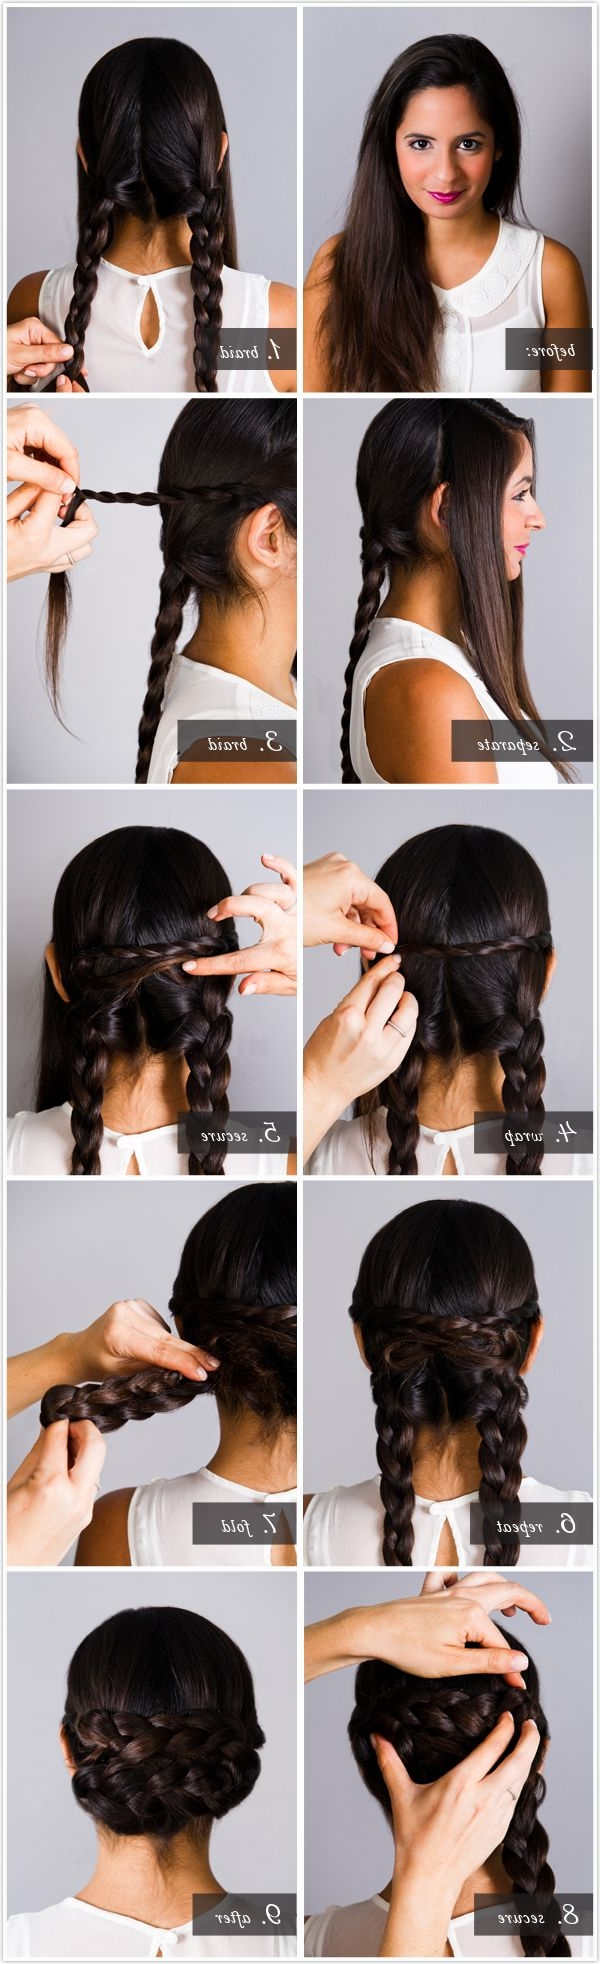 20 Exciting New Intricate Braid Updo Hairstyles – Popular Haircuts Inside Chignon Updo Hairstyles (View 4 of 15)